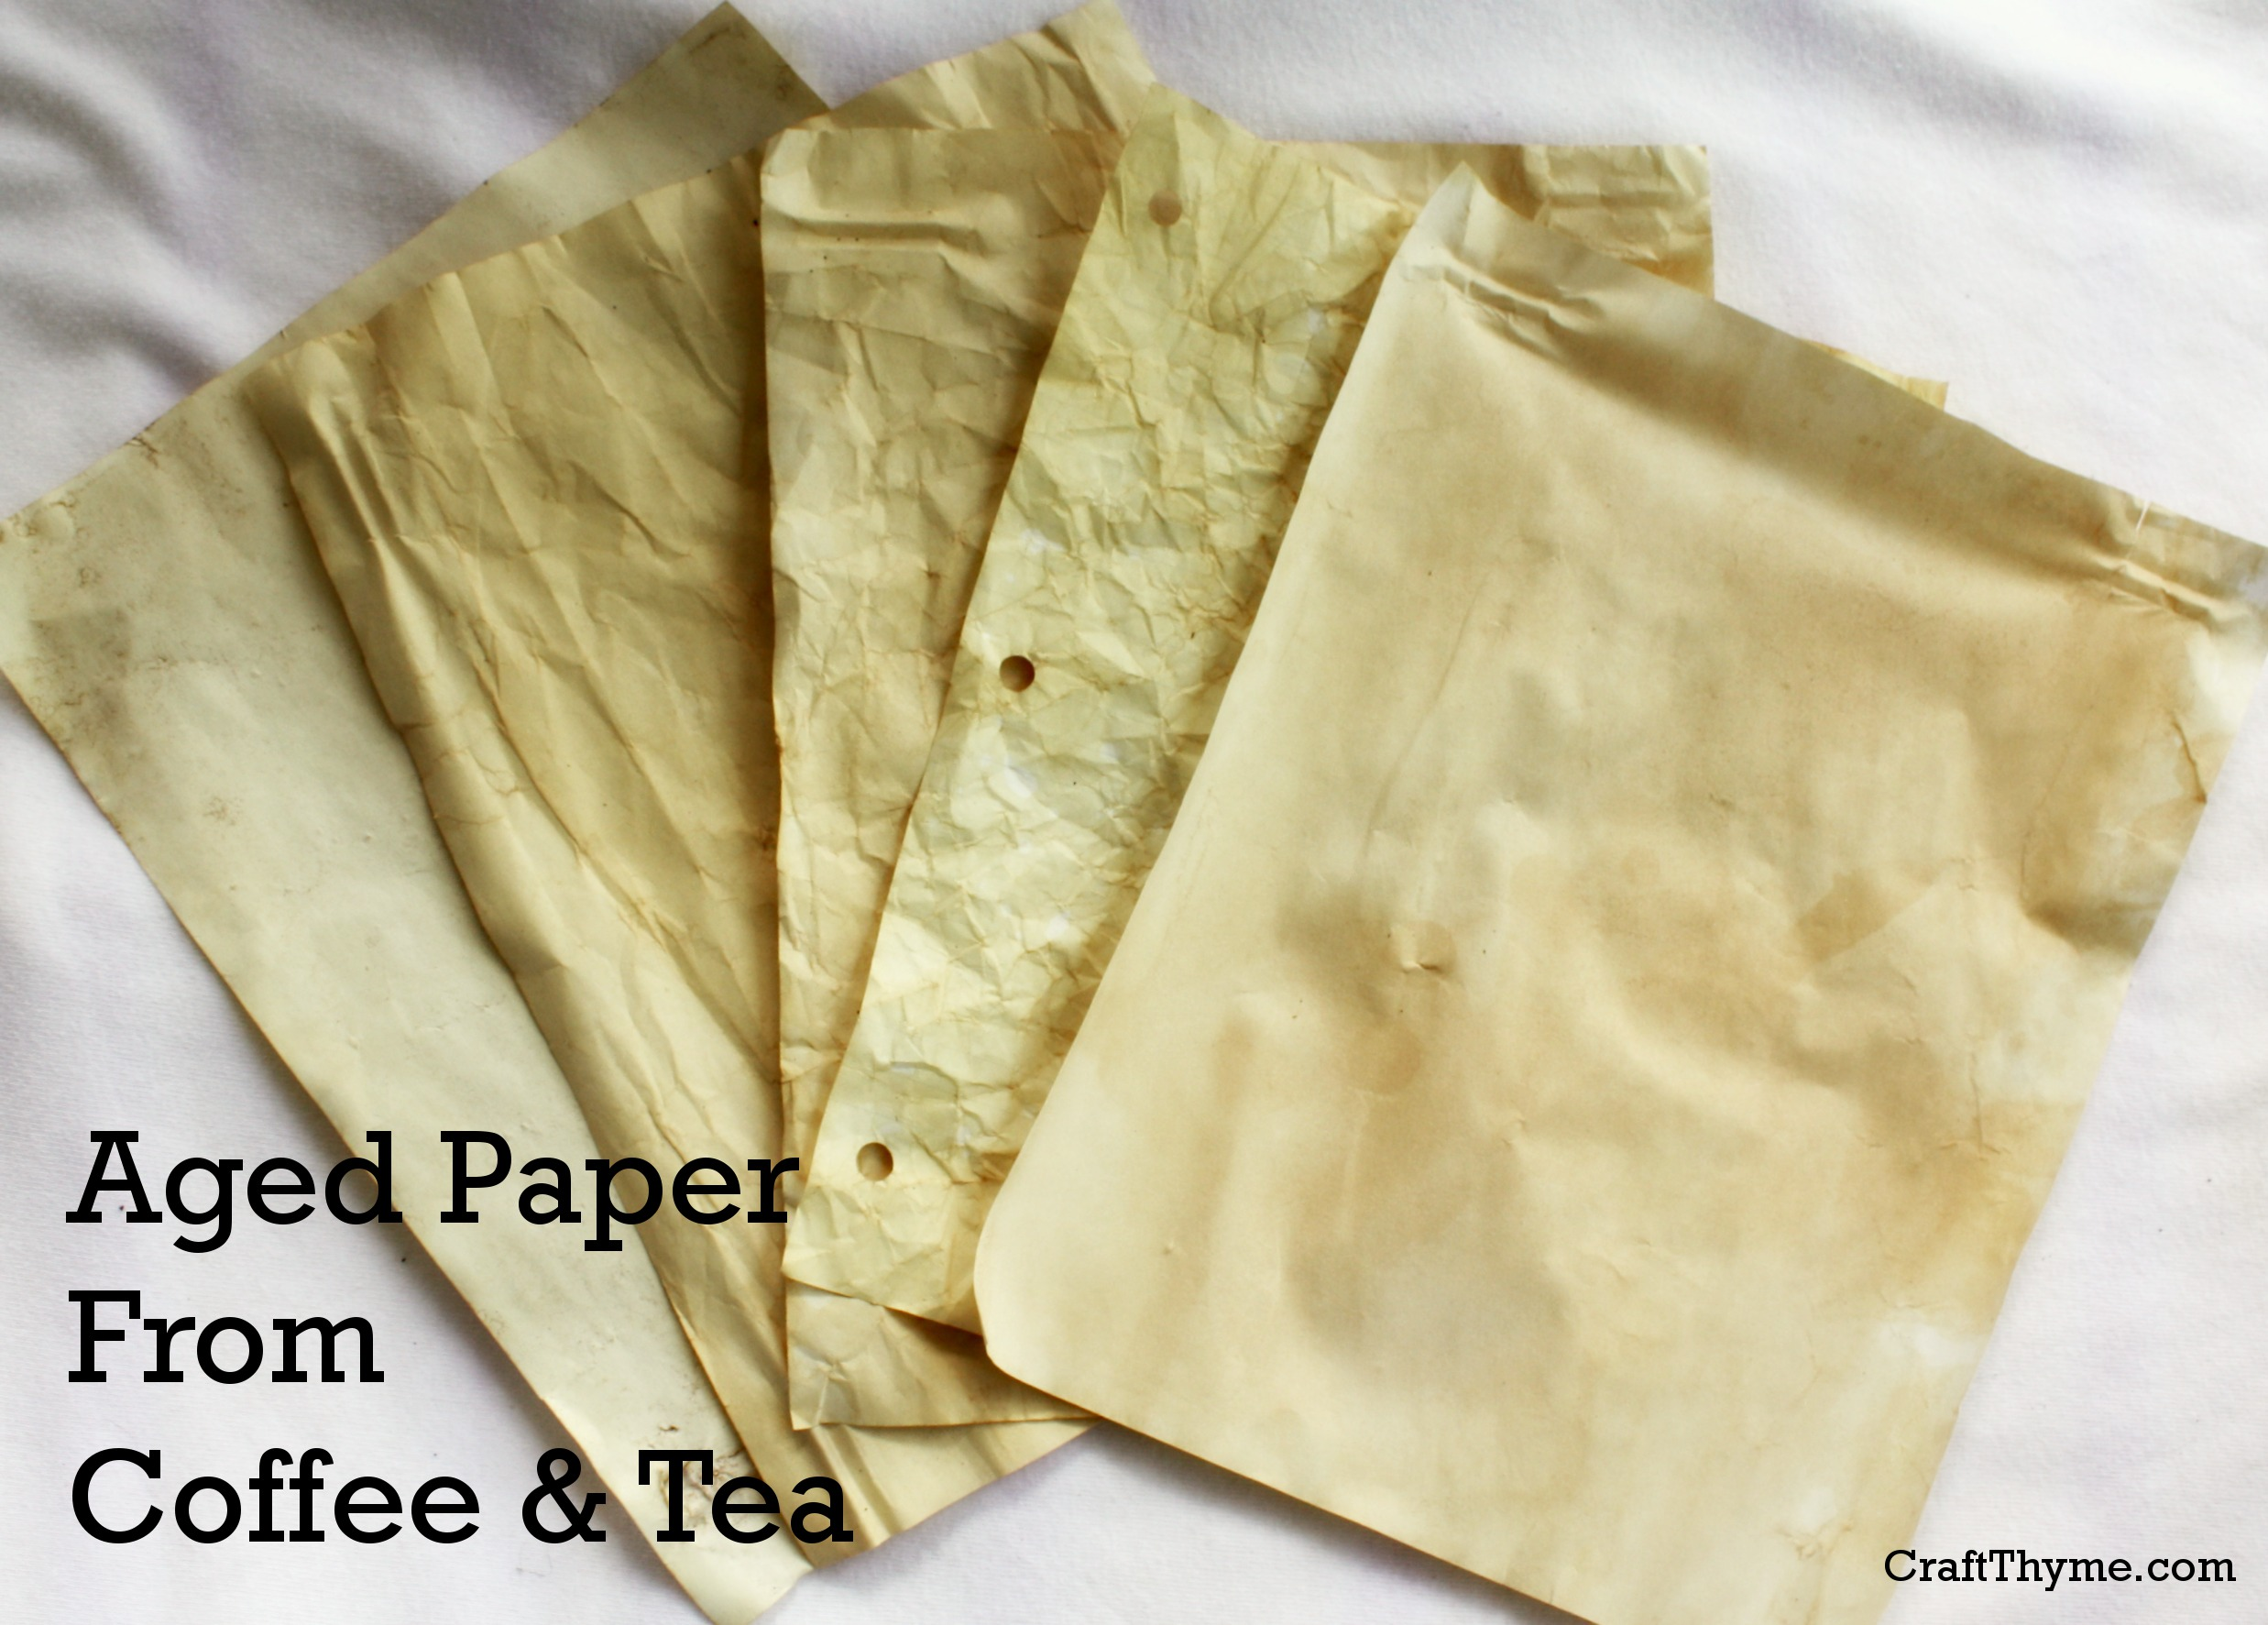 Aged Paper from Coffee and Tea